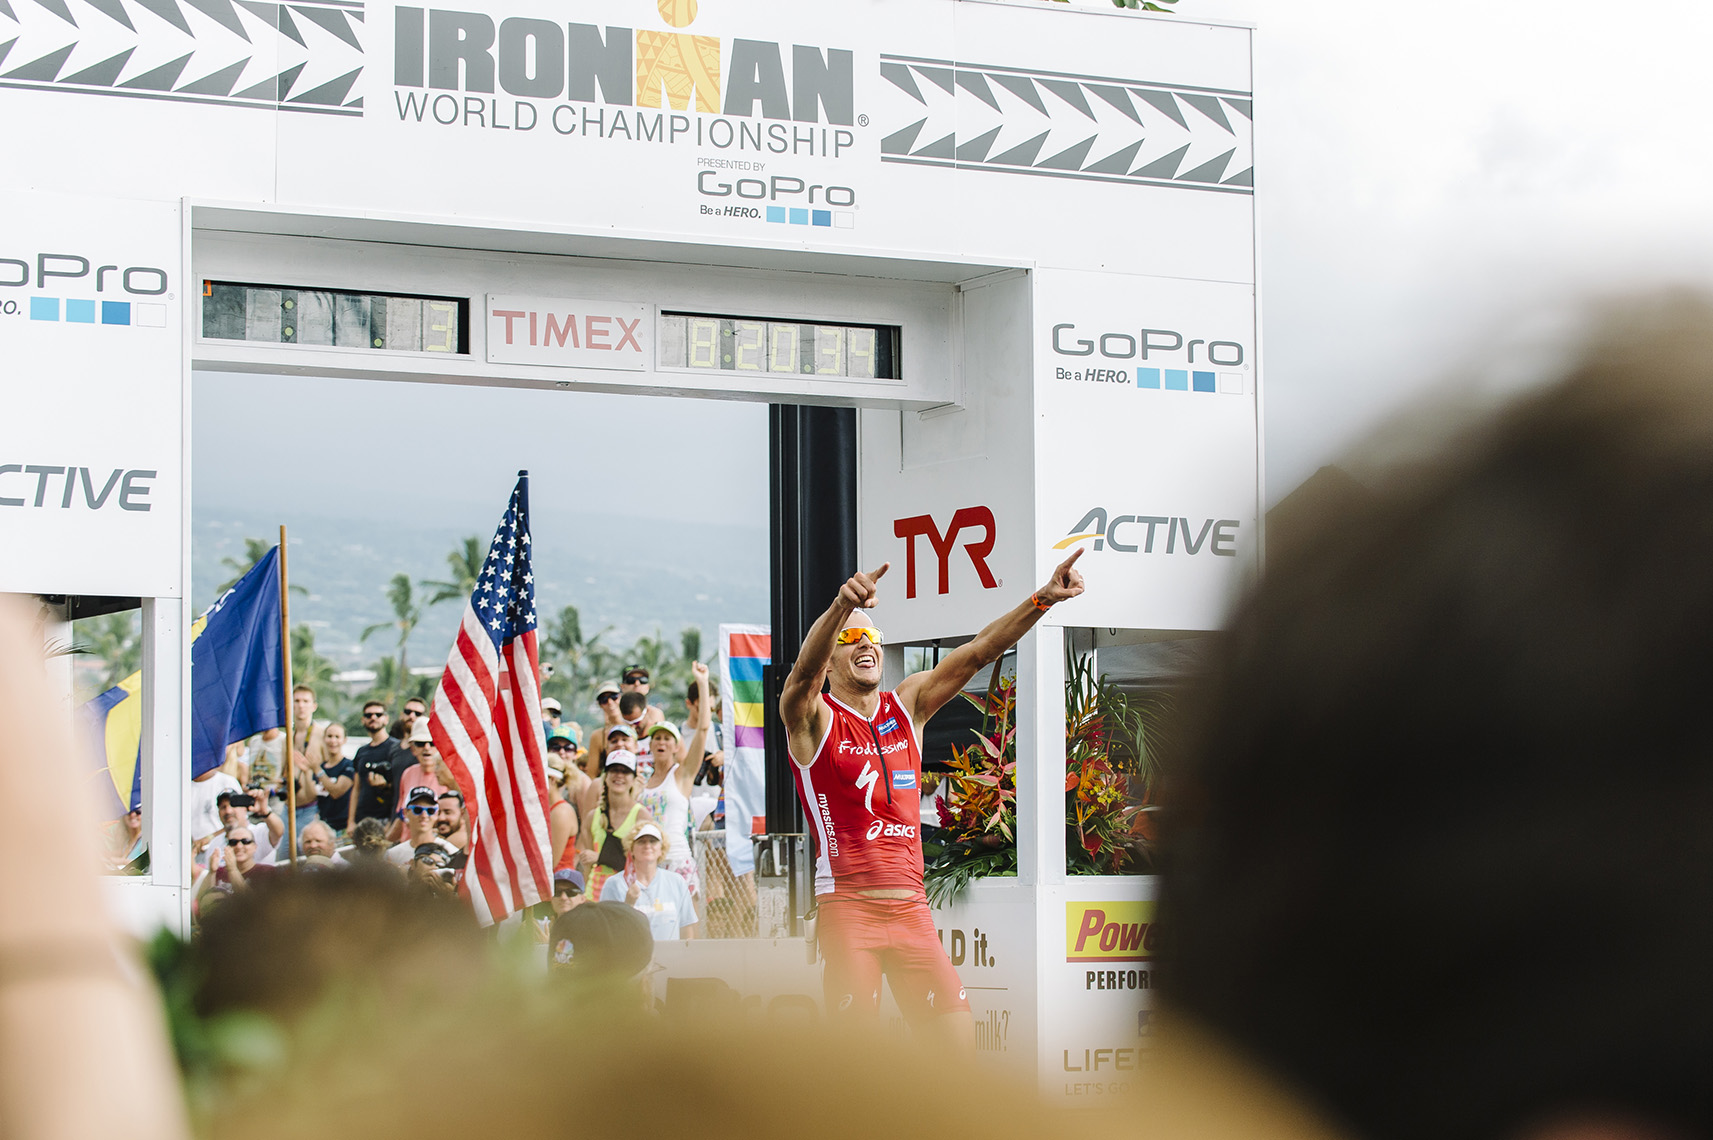 jan-frodeno-kona-ironman-champion